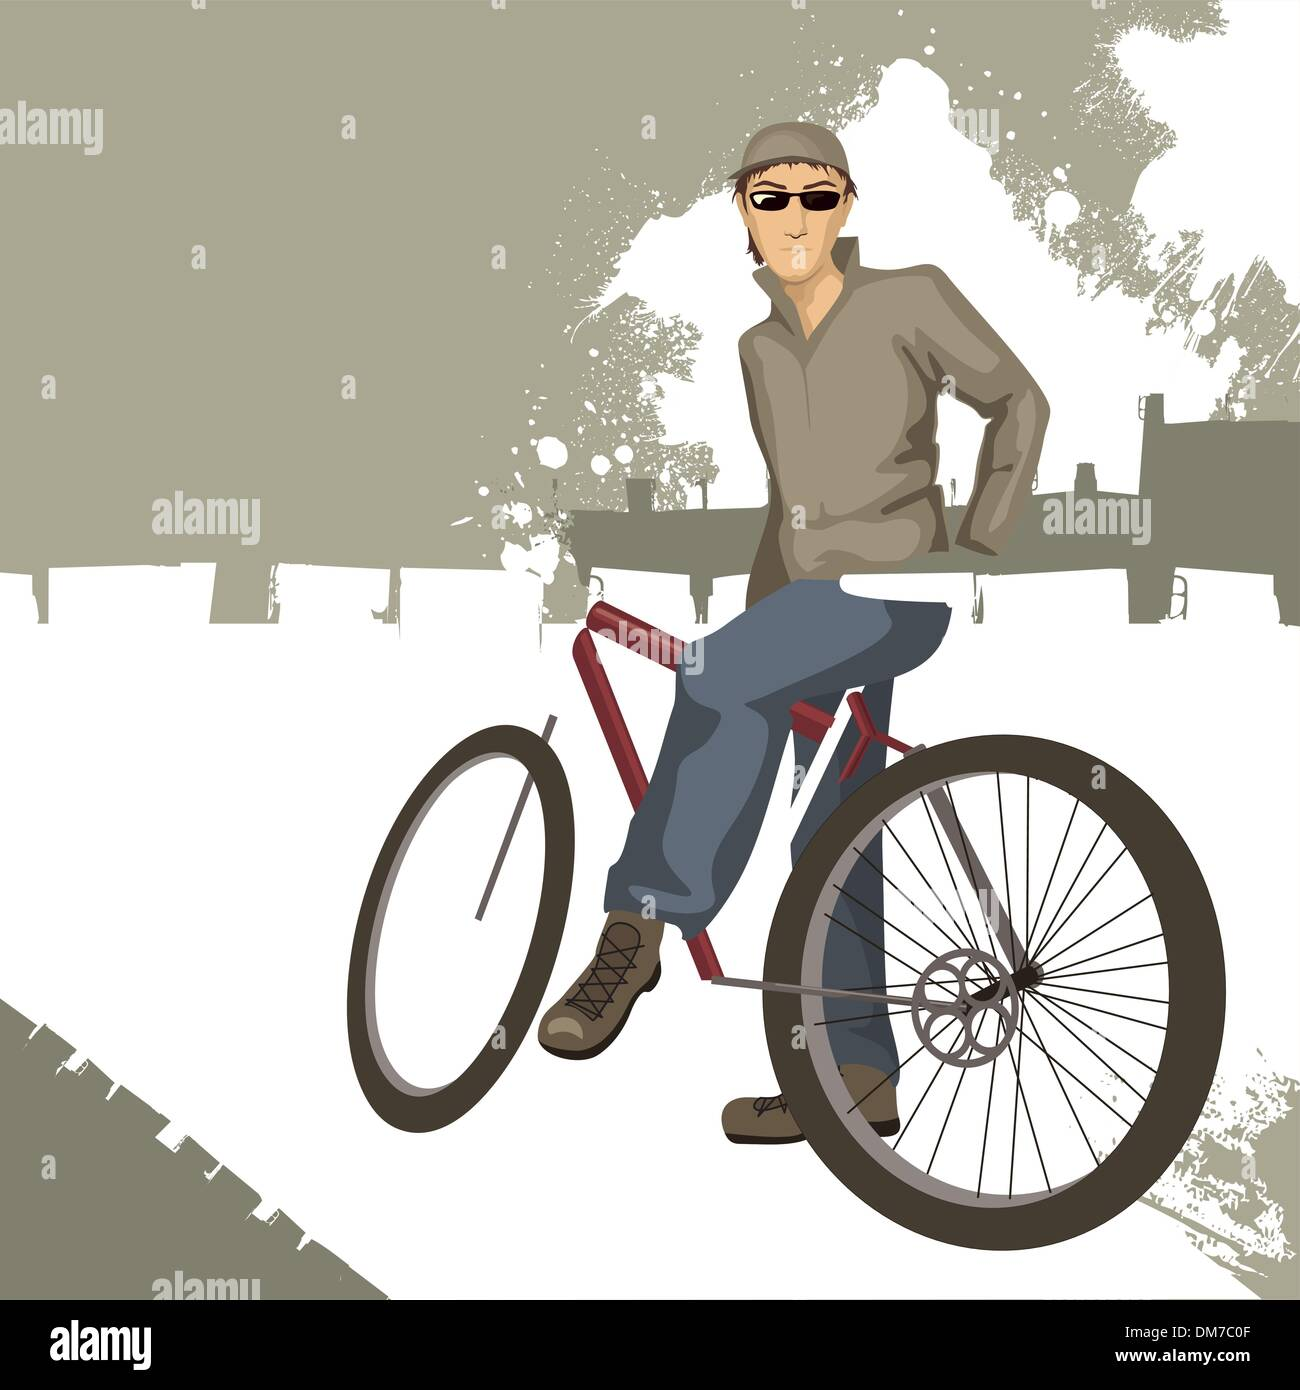 young man on a bicycle - Stock Image